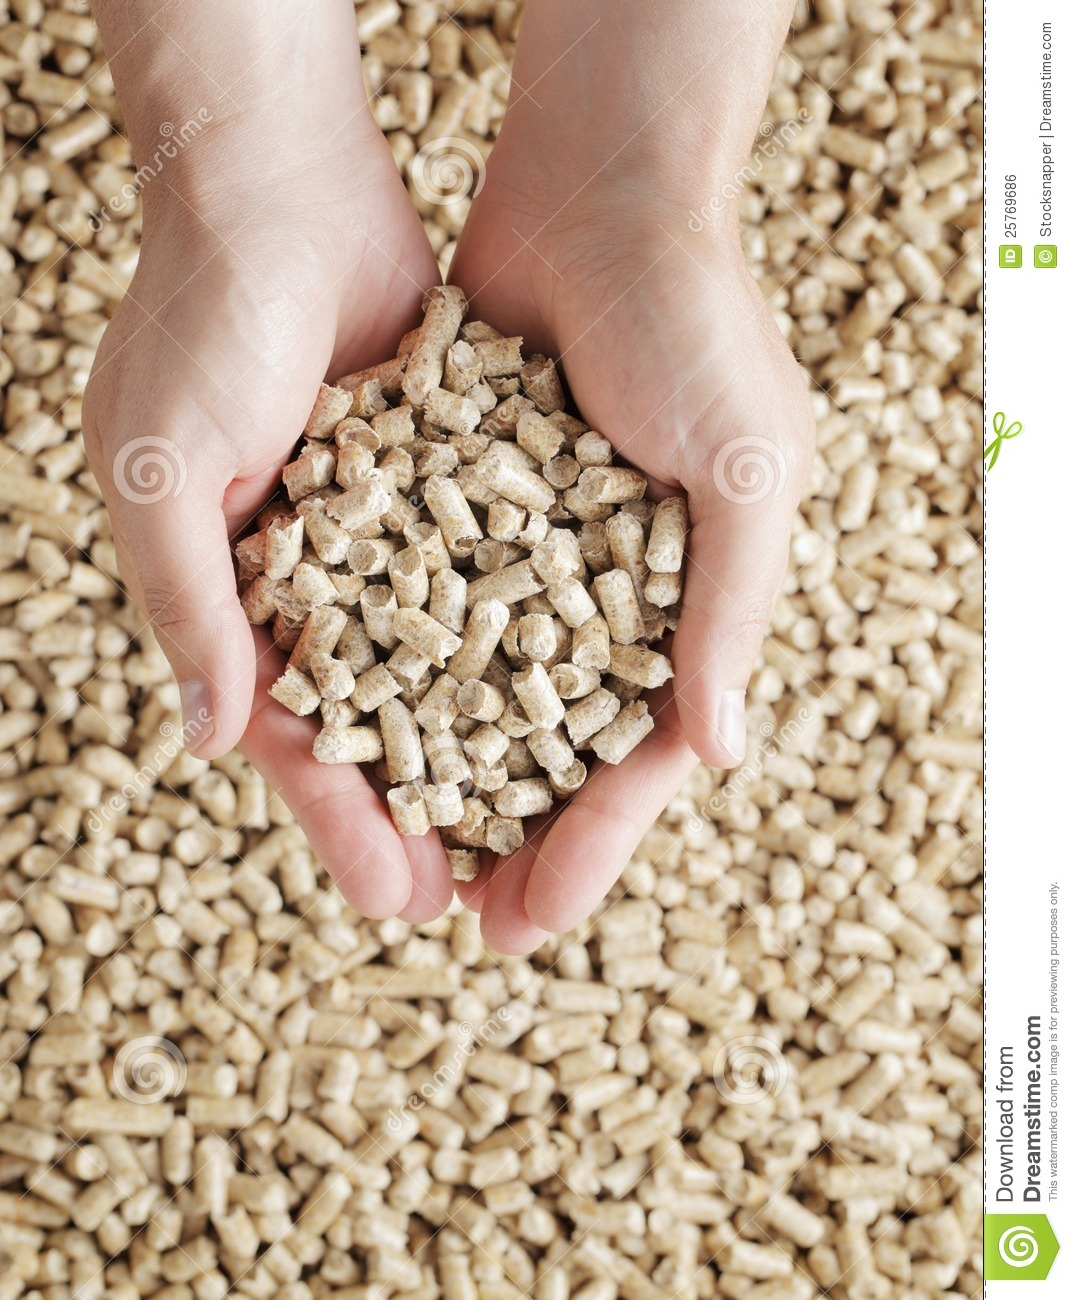 Wood Pellets Are Used For What ~ Wood pellets stock photo image of fuel heating